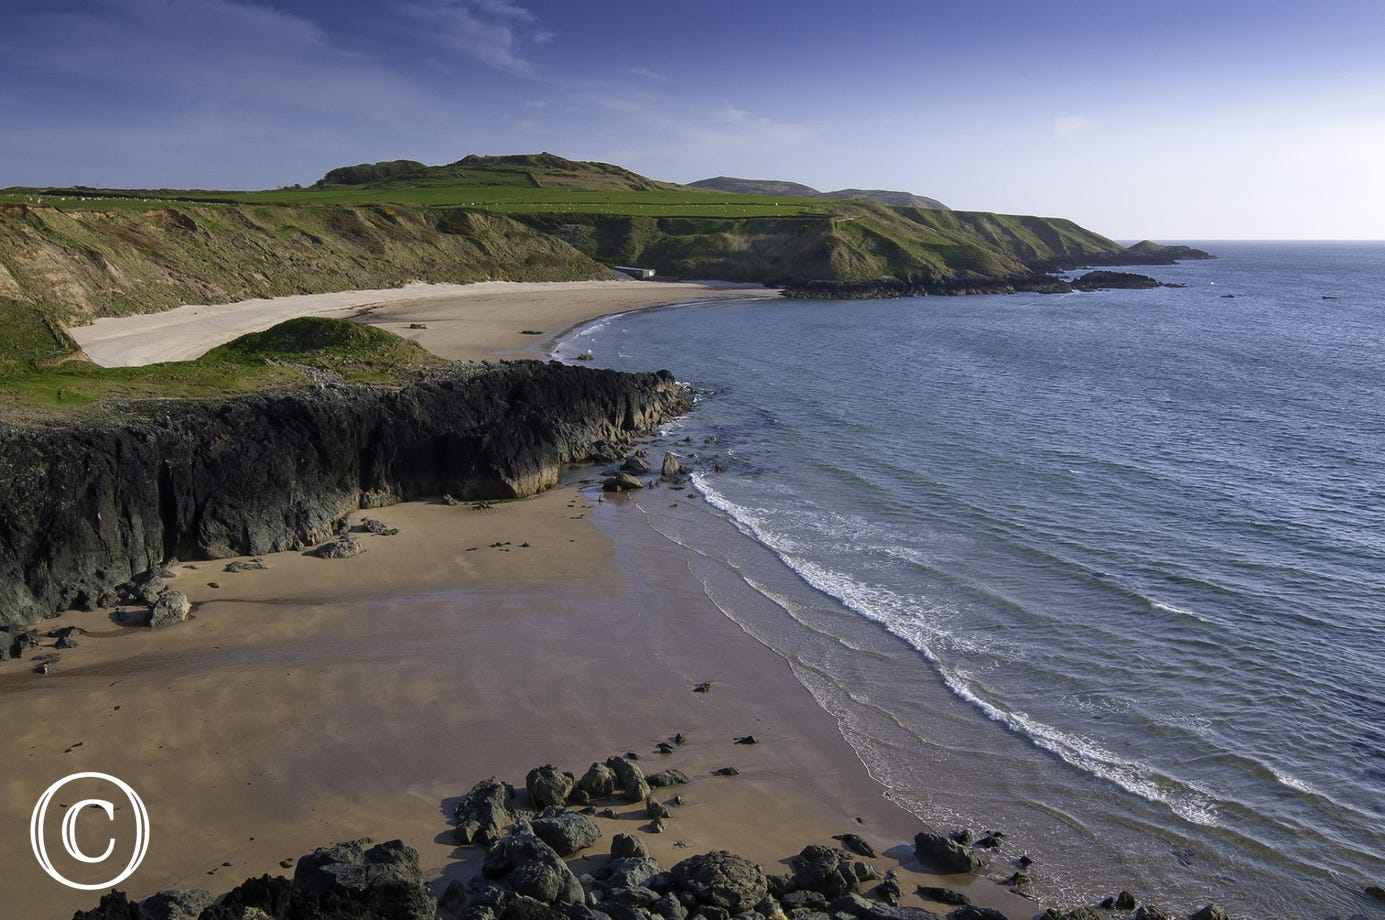 Porthoer / Whistling Sands